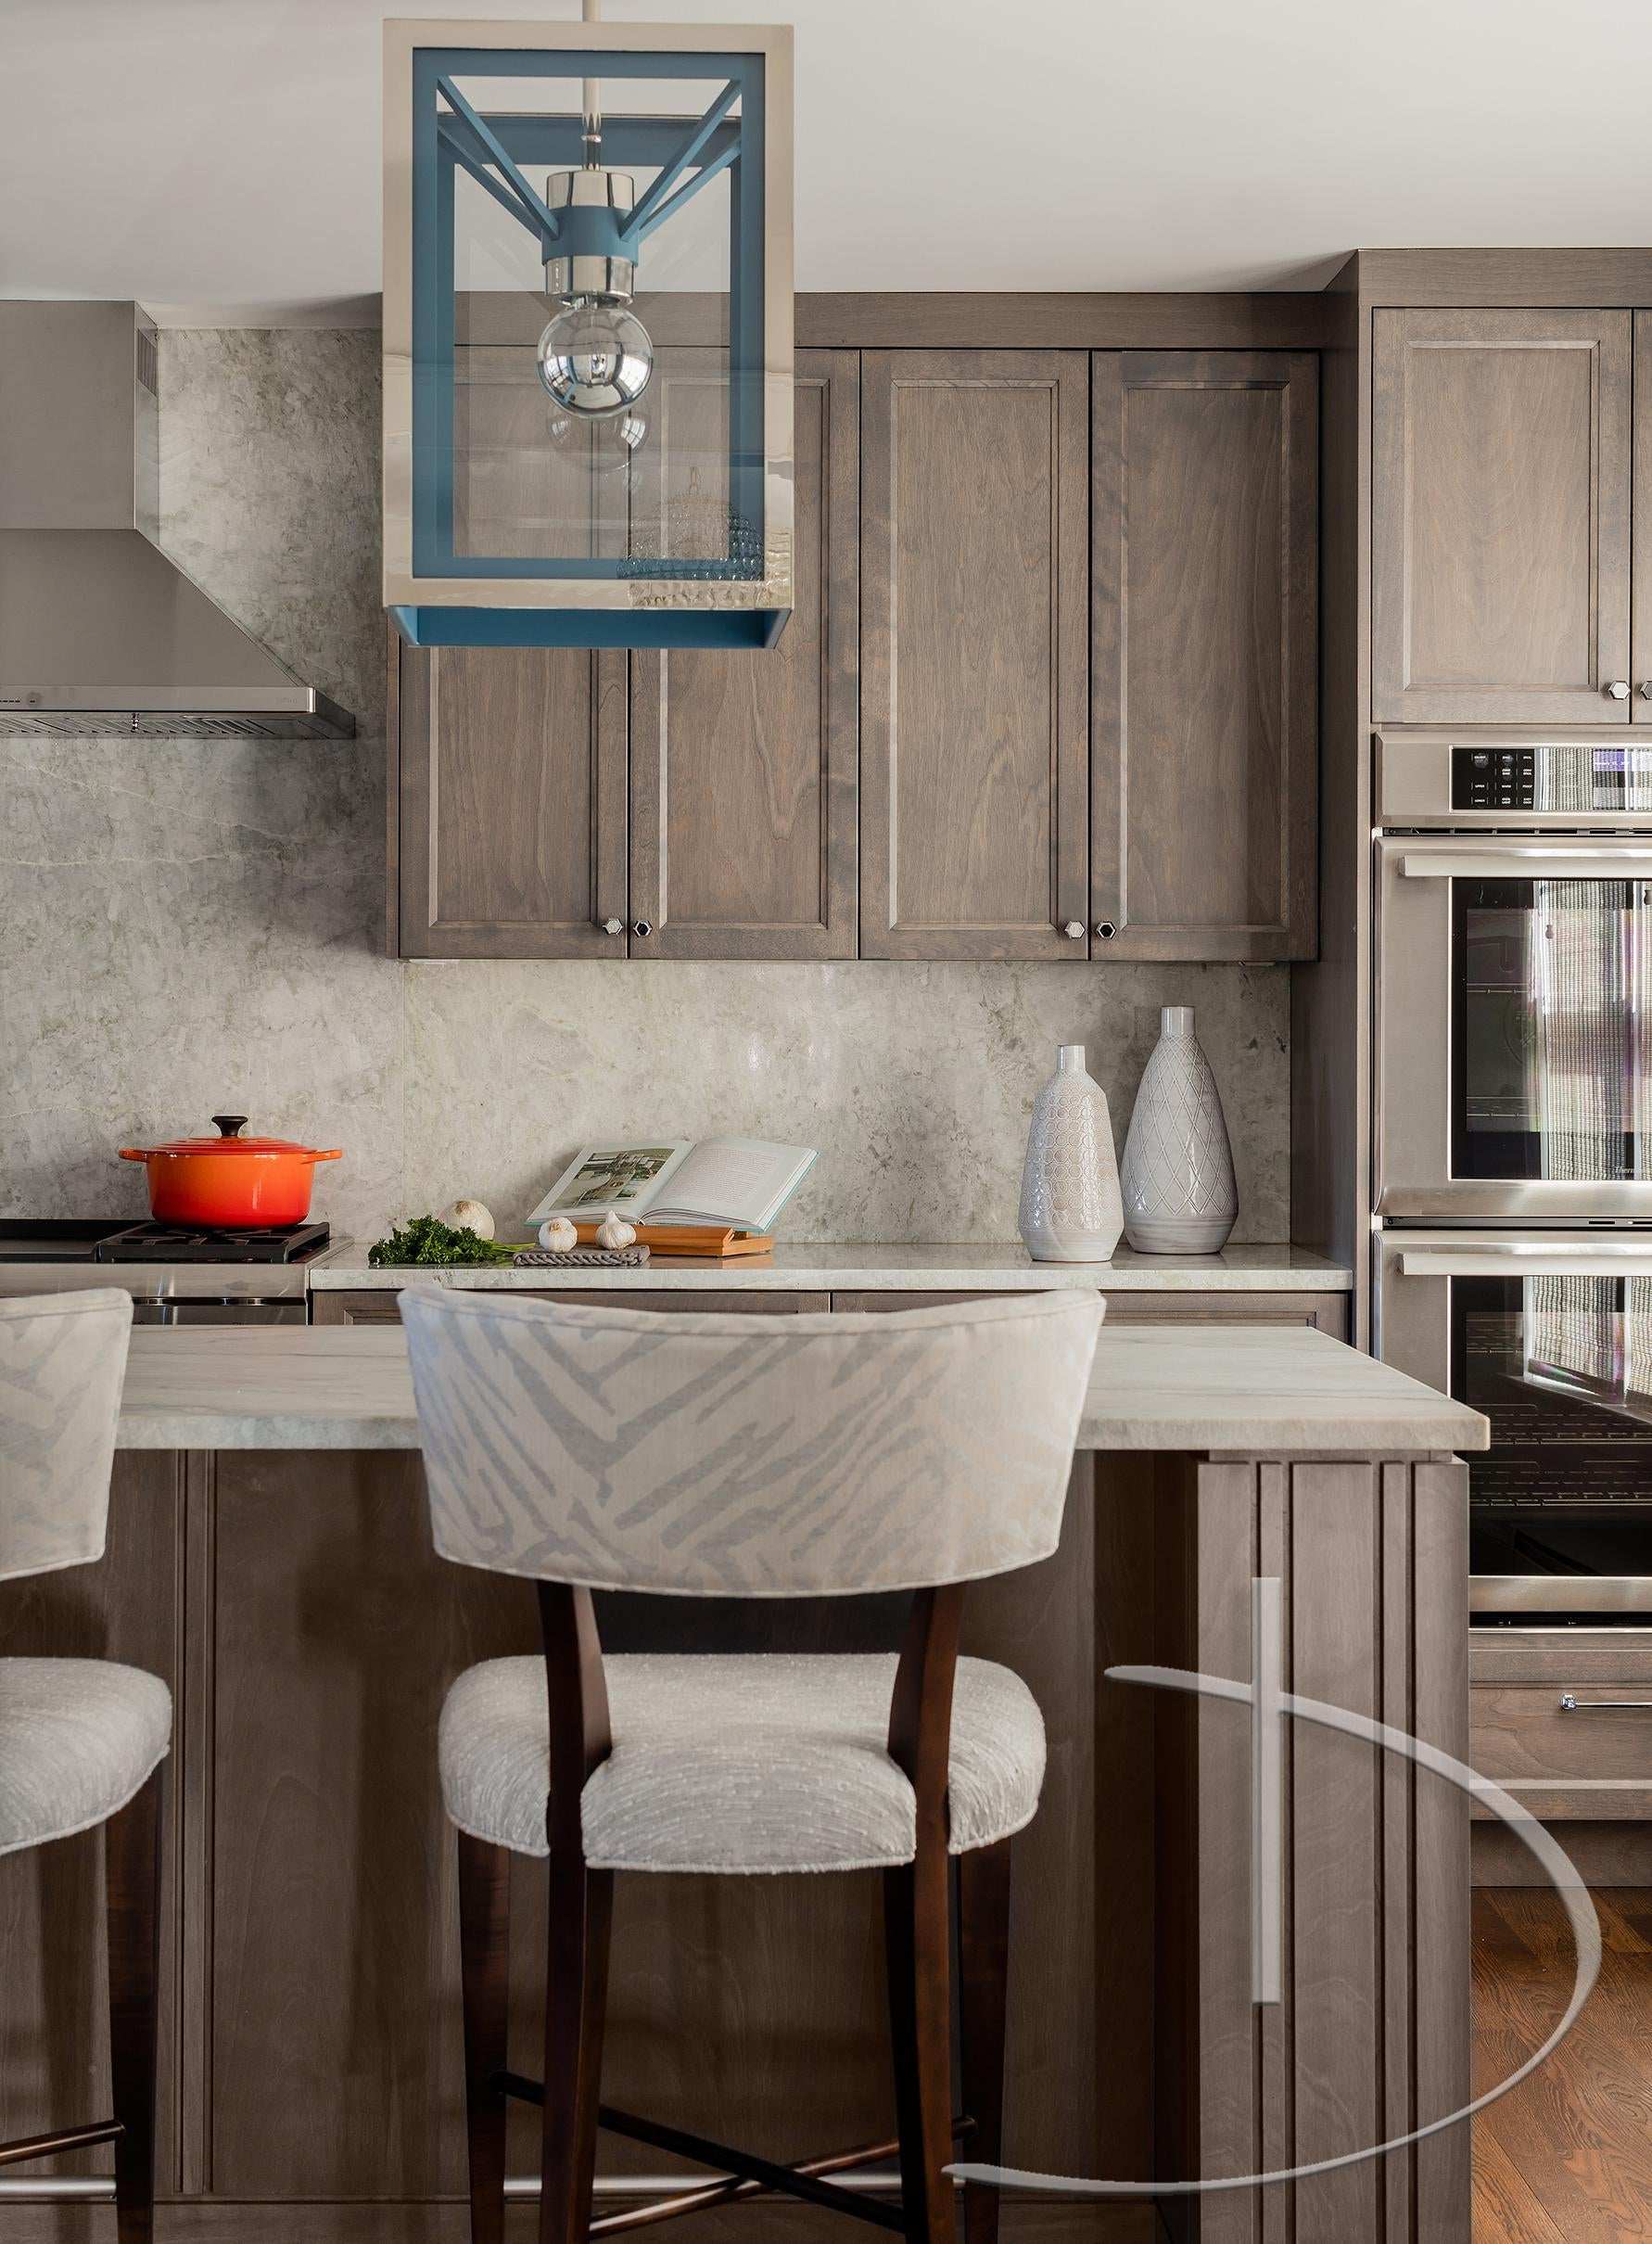 Captivating Into The Blue Andover, MA Kitchen Contemporary Modern Transitional By Daher  Interior Design